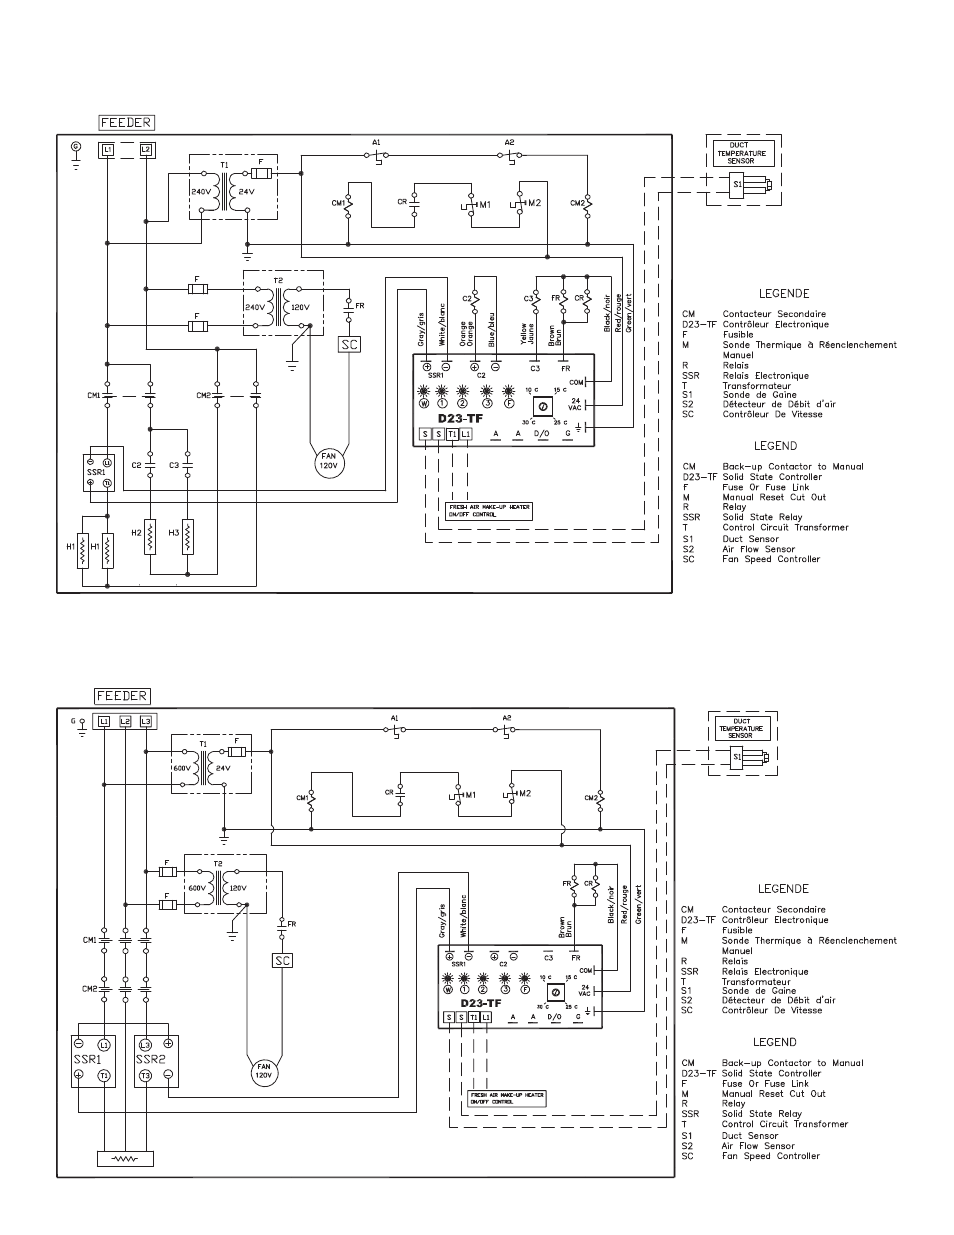 thermolec mini make up air page6 thermolec mini make up air user manual page 6 8 thermolec wiring diagram at edmiracle.co